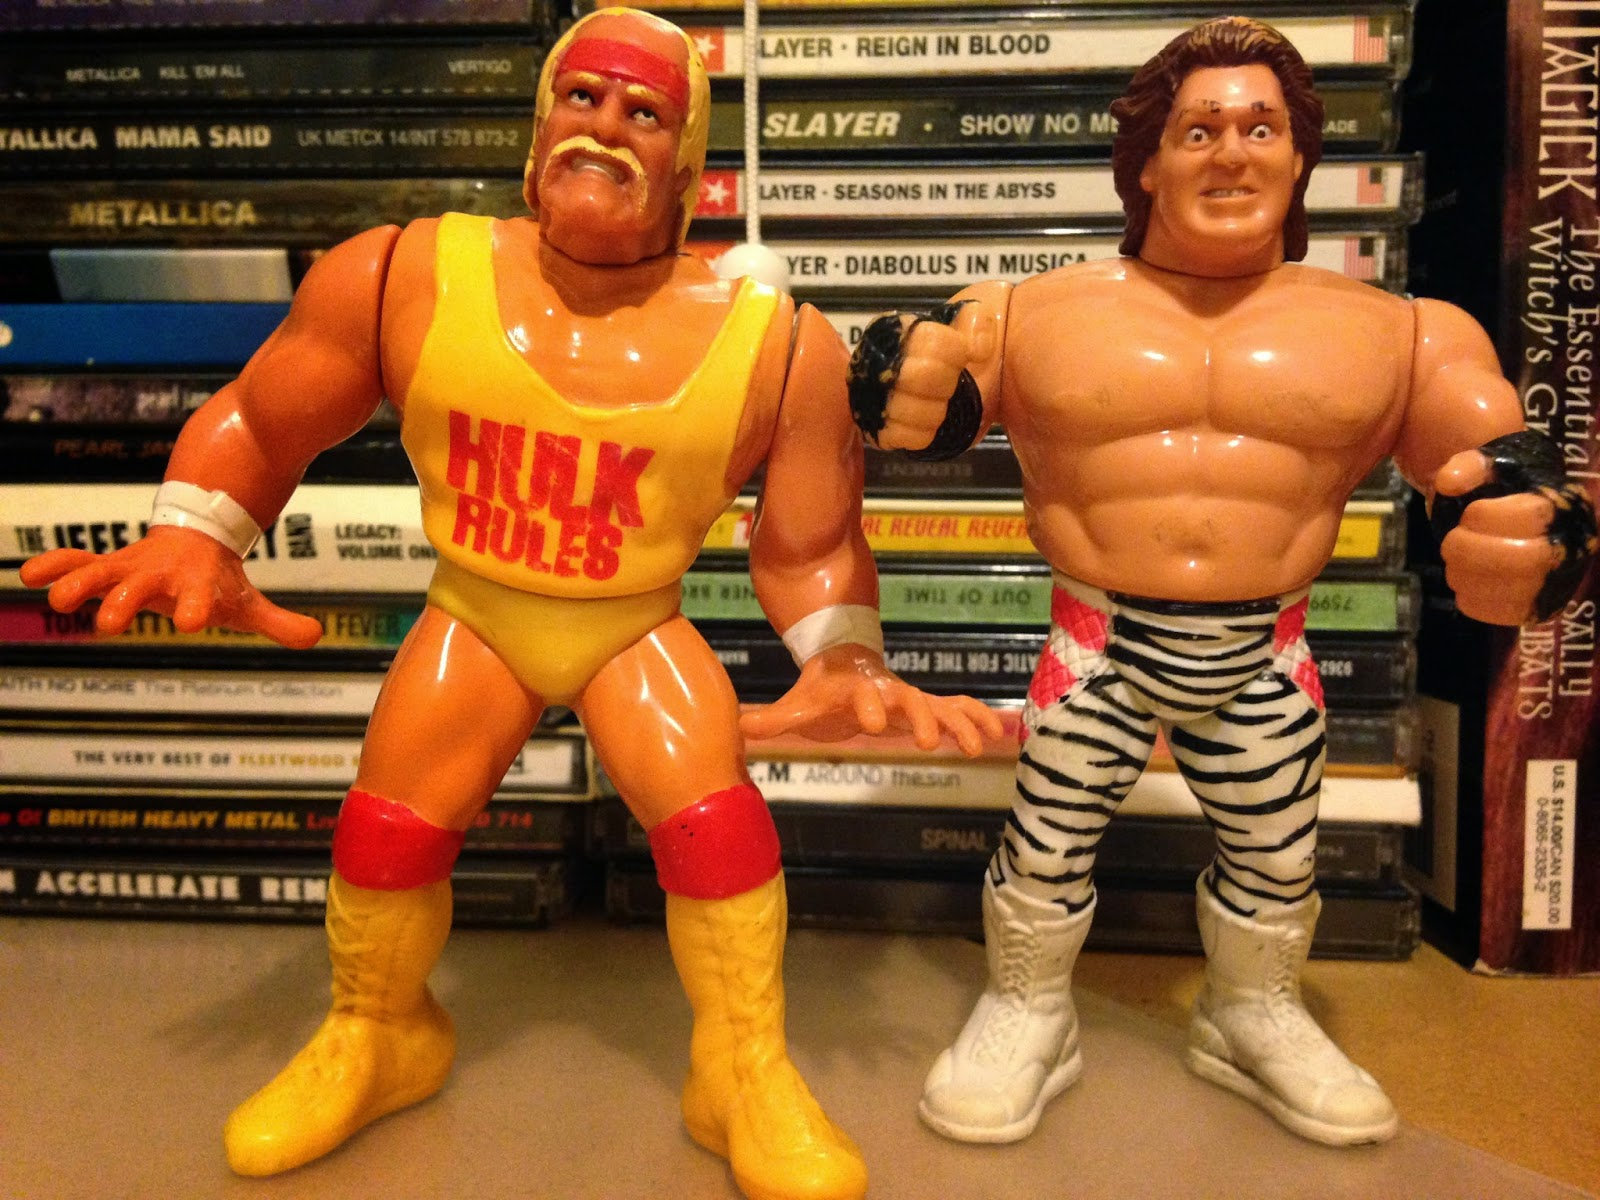 WWF Hasbro Figures - Hulk Hogan and Brutus 'The Barber' Beefcake